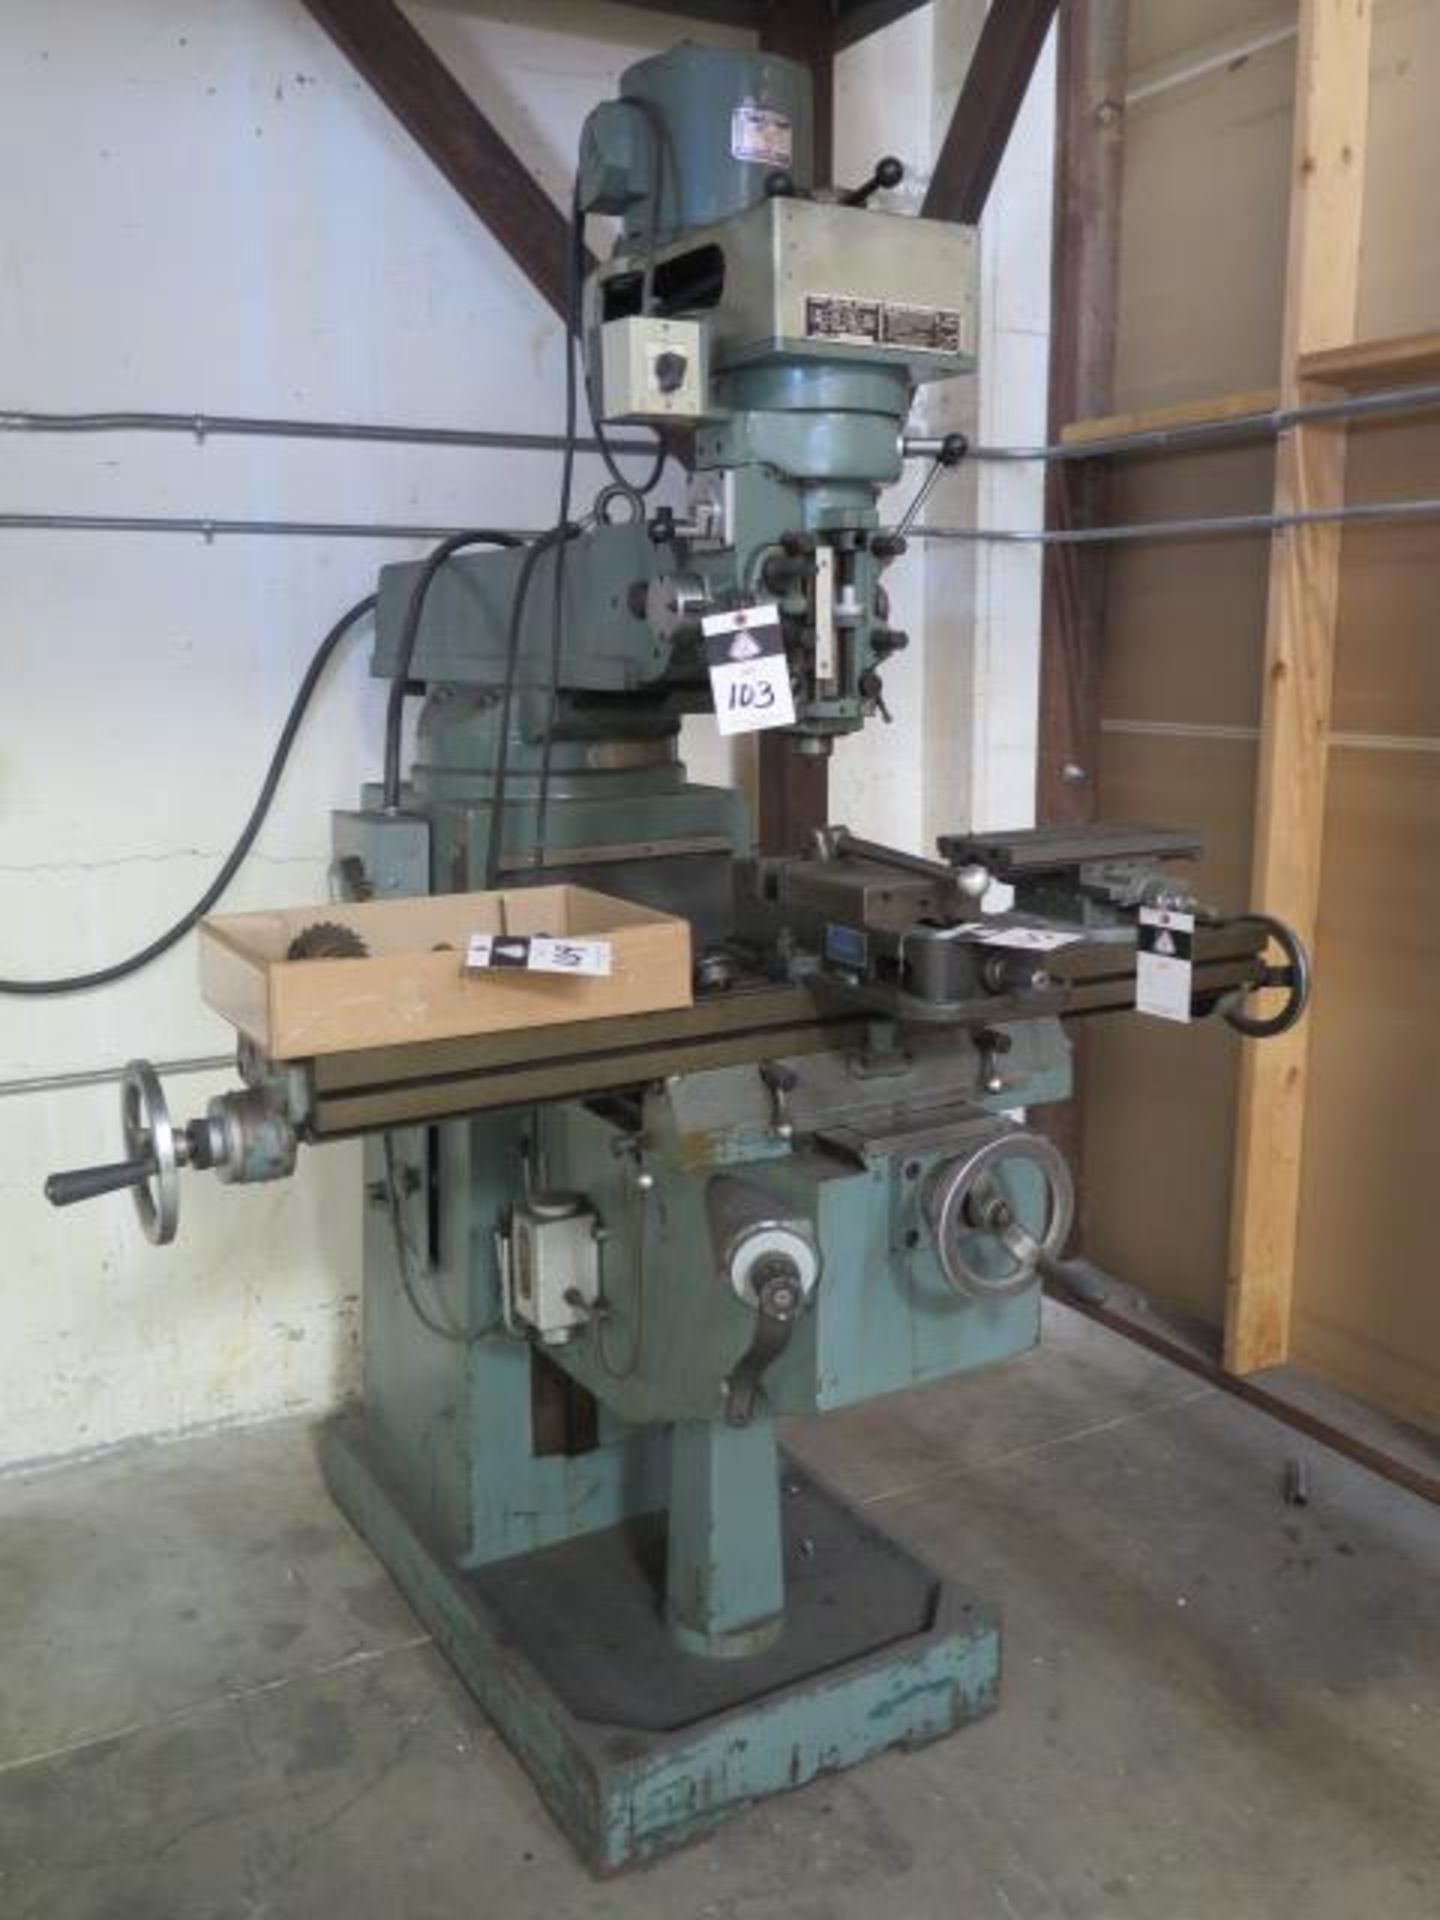 """Import Vertical Mill w/ 3Hp Motor, 80-2720 RPM, 8-Speeds, R8 Spindle, 10"""" x 48"""" Table (SOLD AS-"""